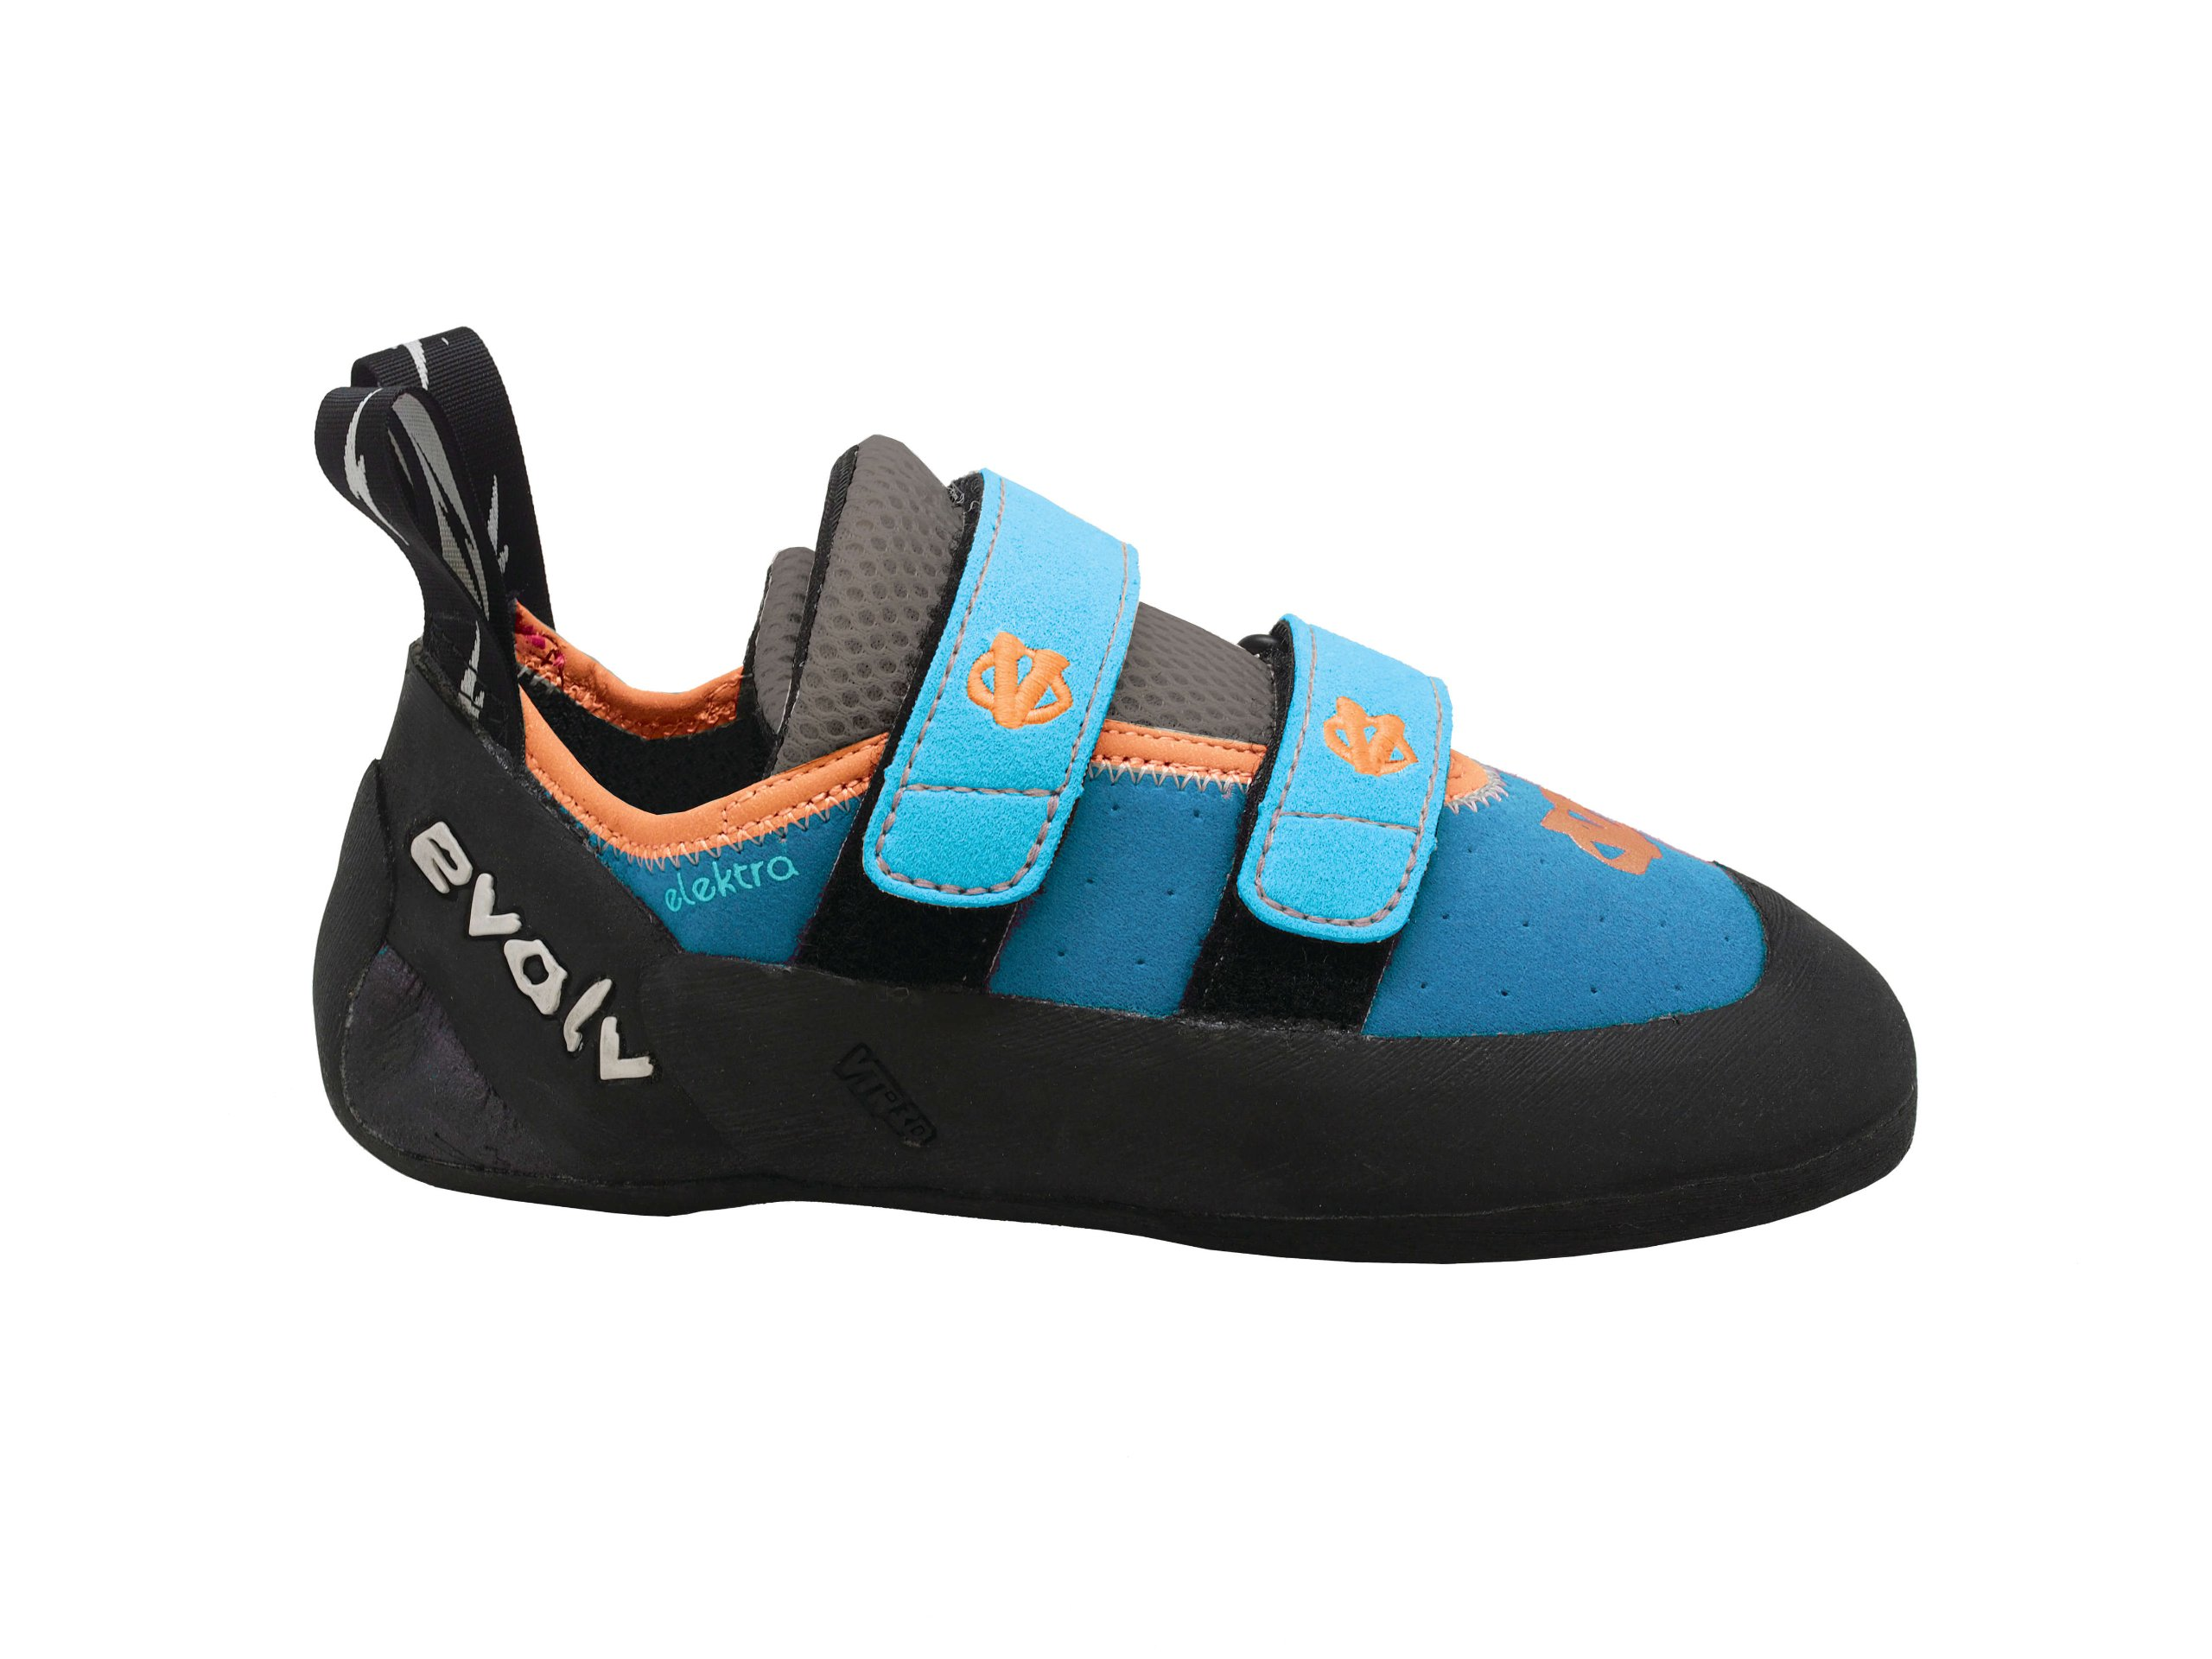 Evolv Elektra Climbing Shoe (2014) - Women's Teal 4.5 by Evolv